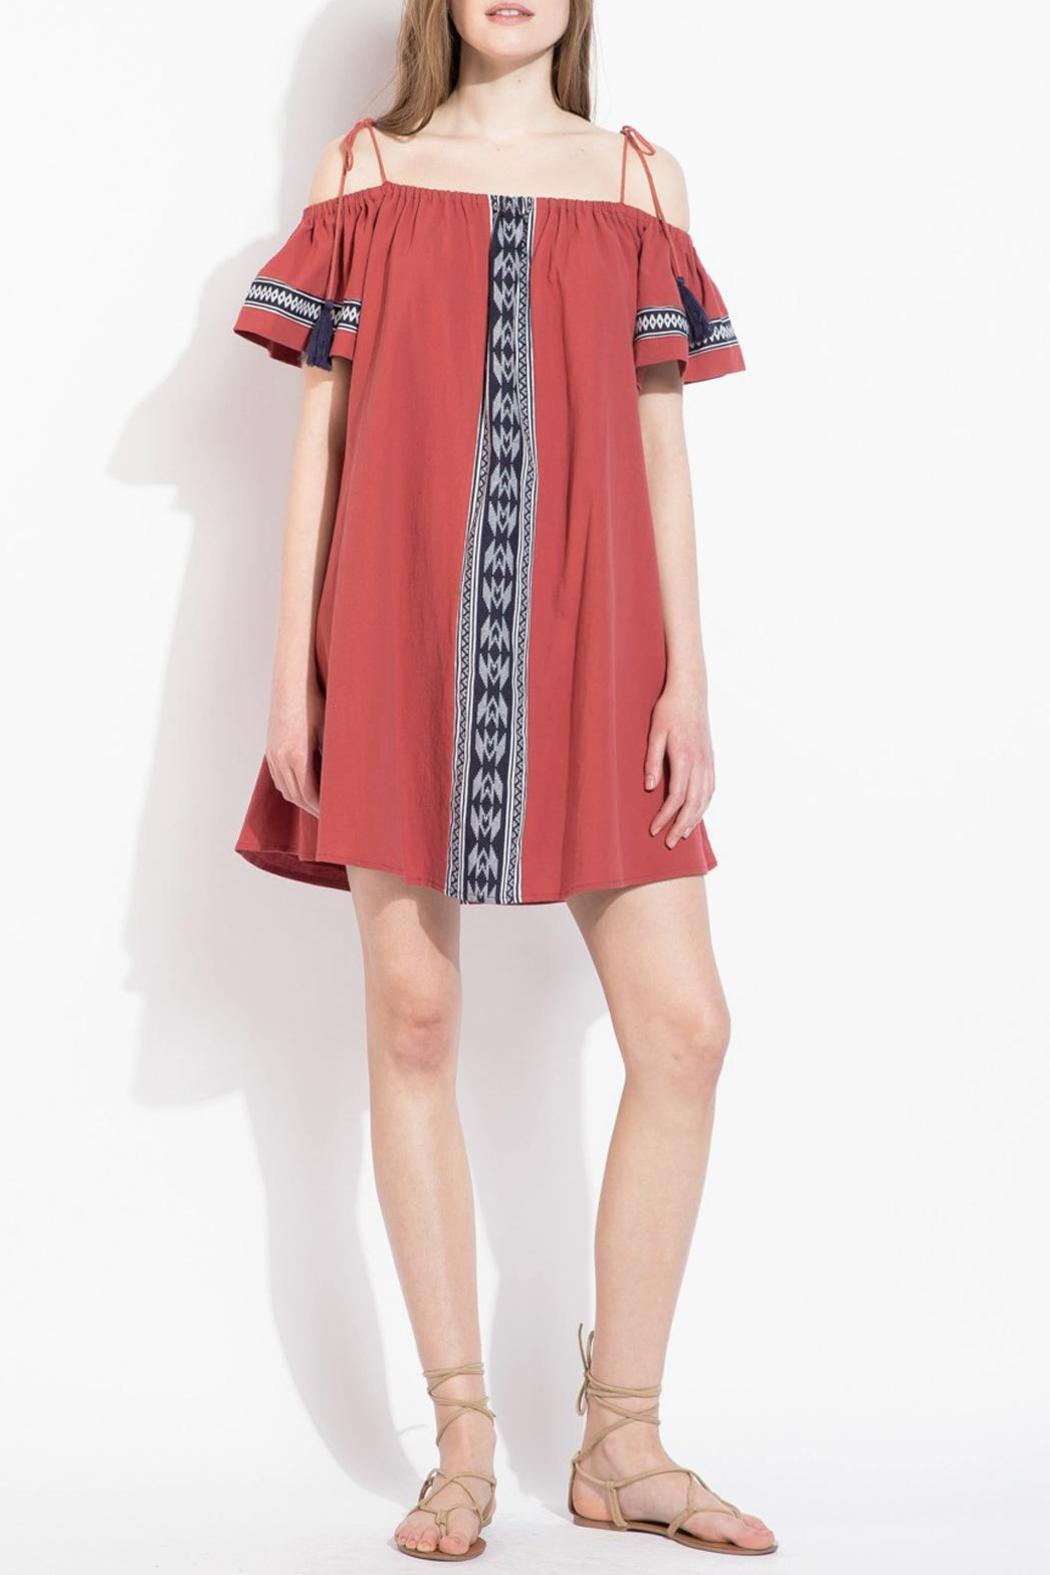 THML Clothing Red Off-Shoulder Dress - Main Image